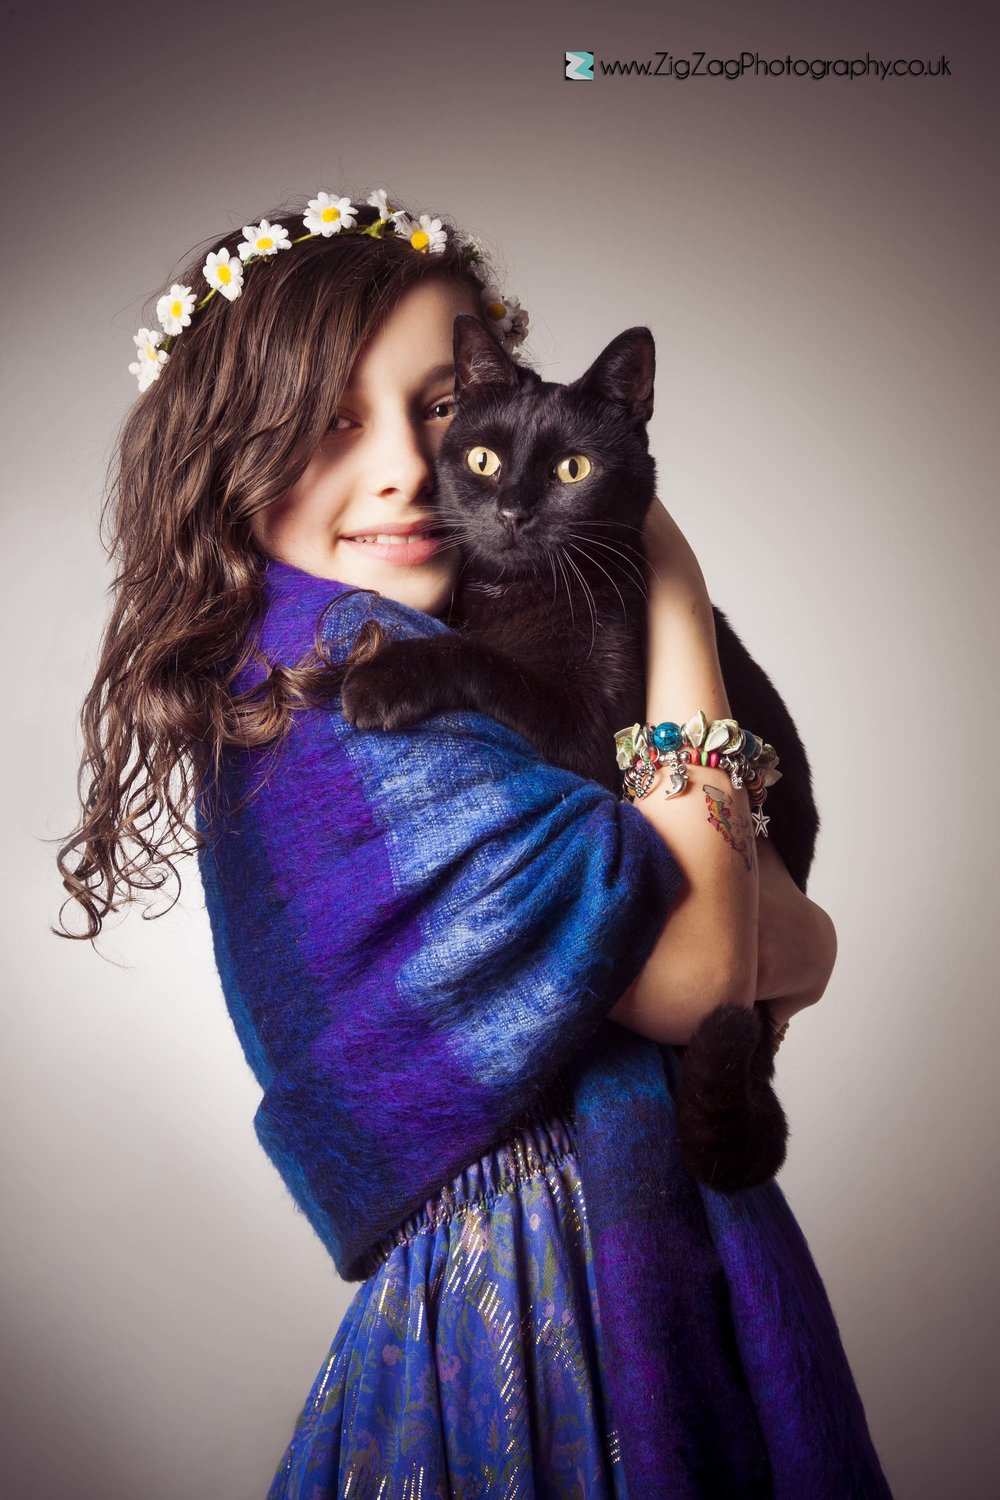 photography-session-leicester-studio-zigzag-cat-black-child-daisy-chain-flowers-hair-dress-ideas.jpg